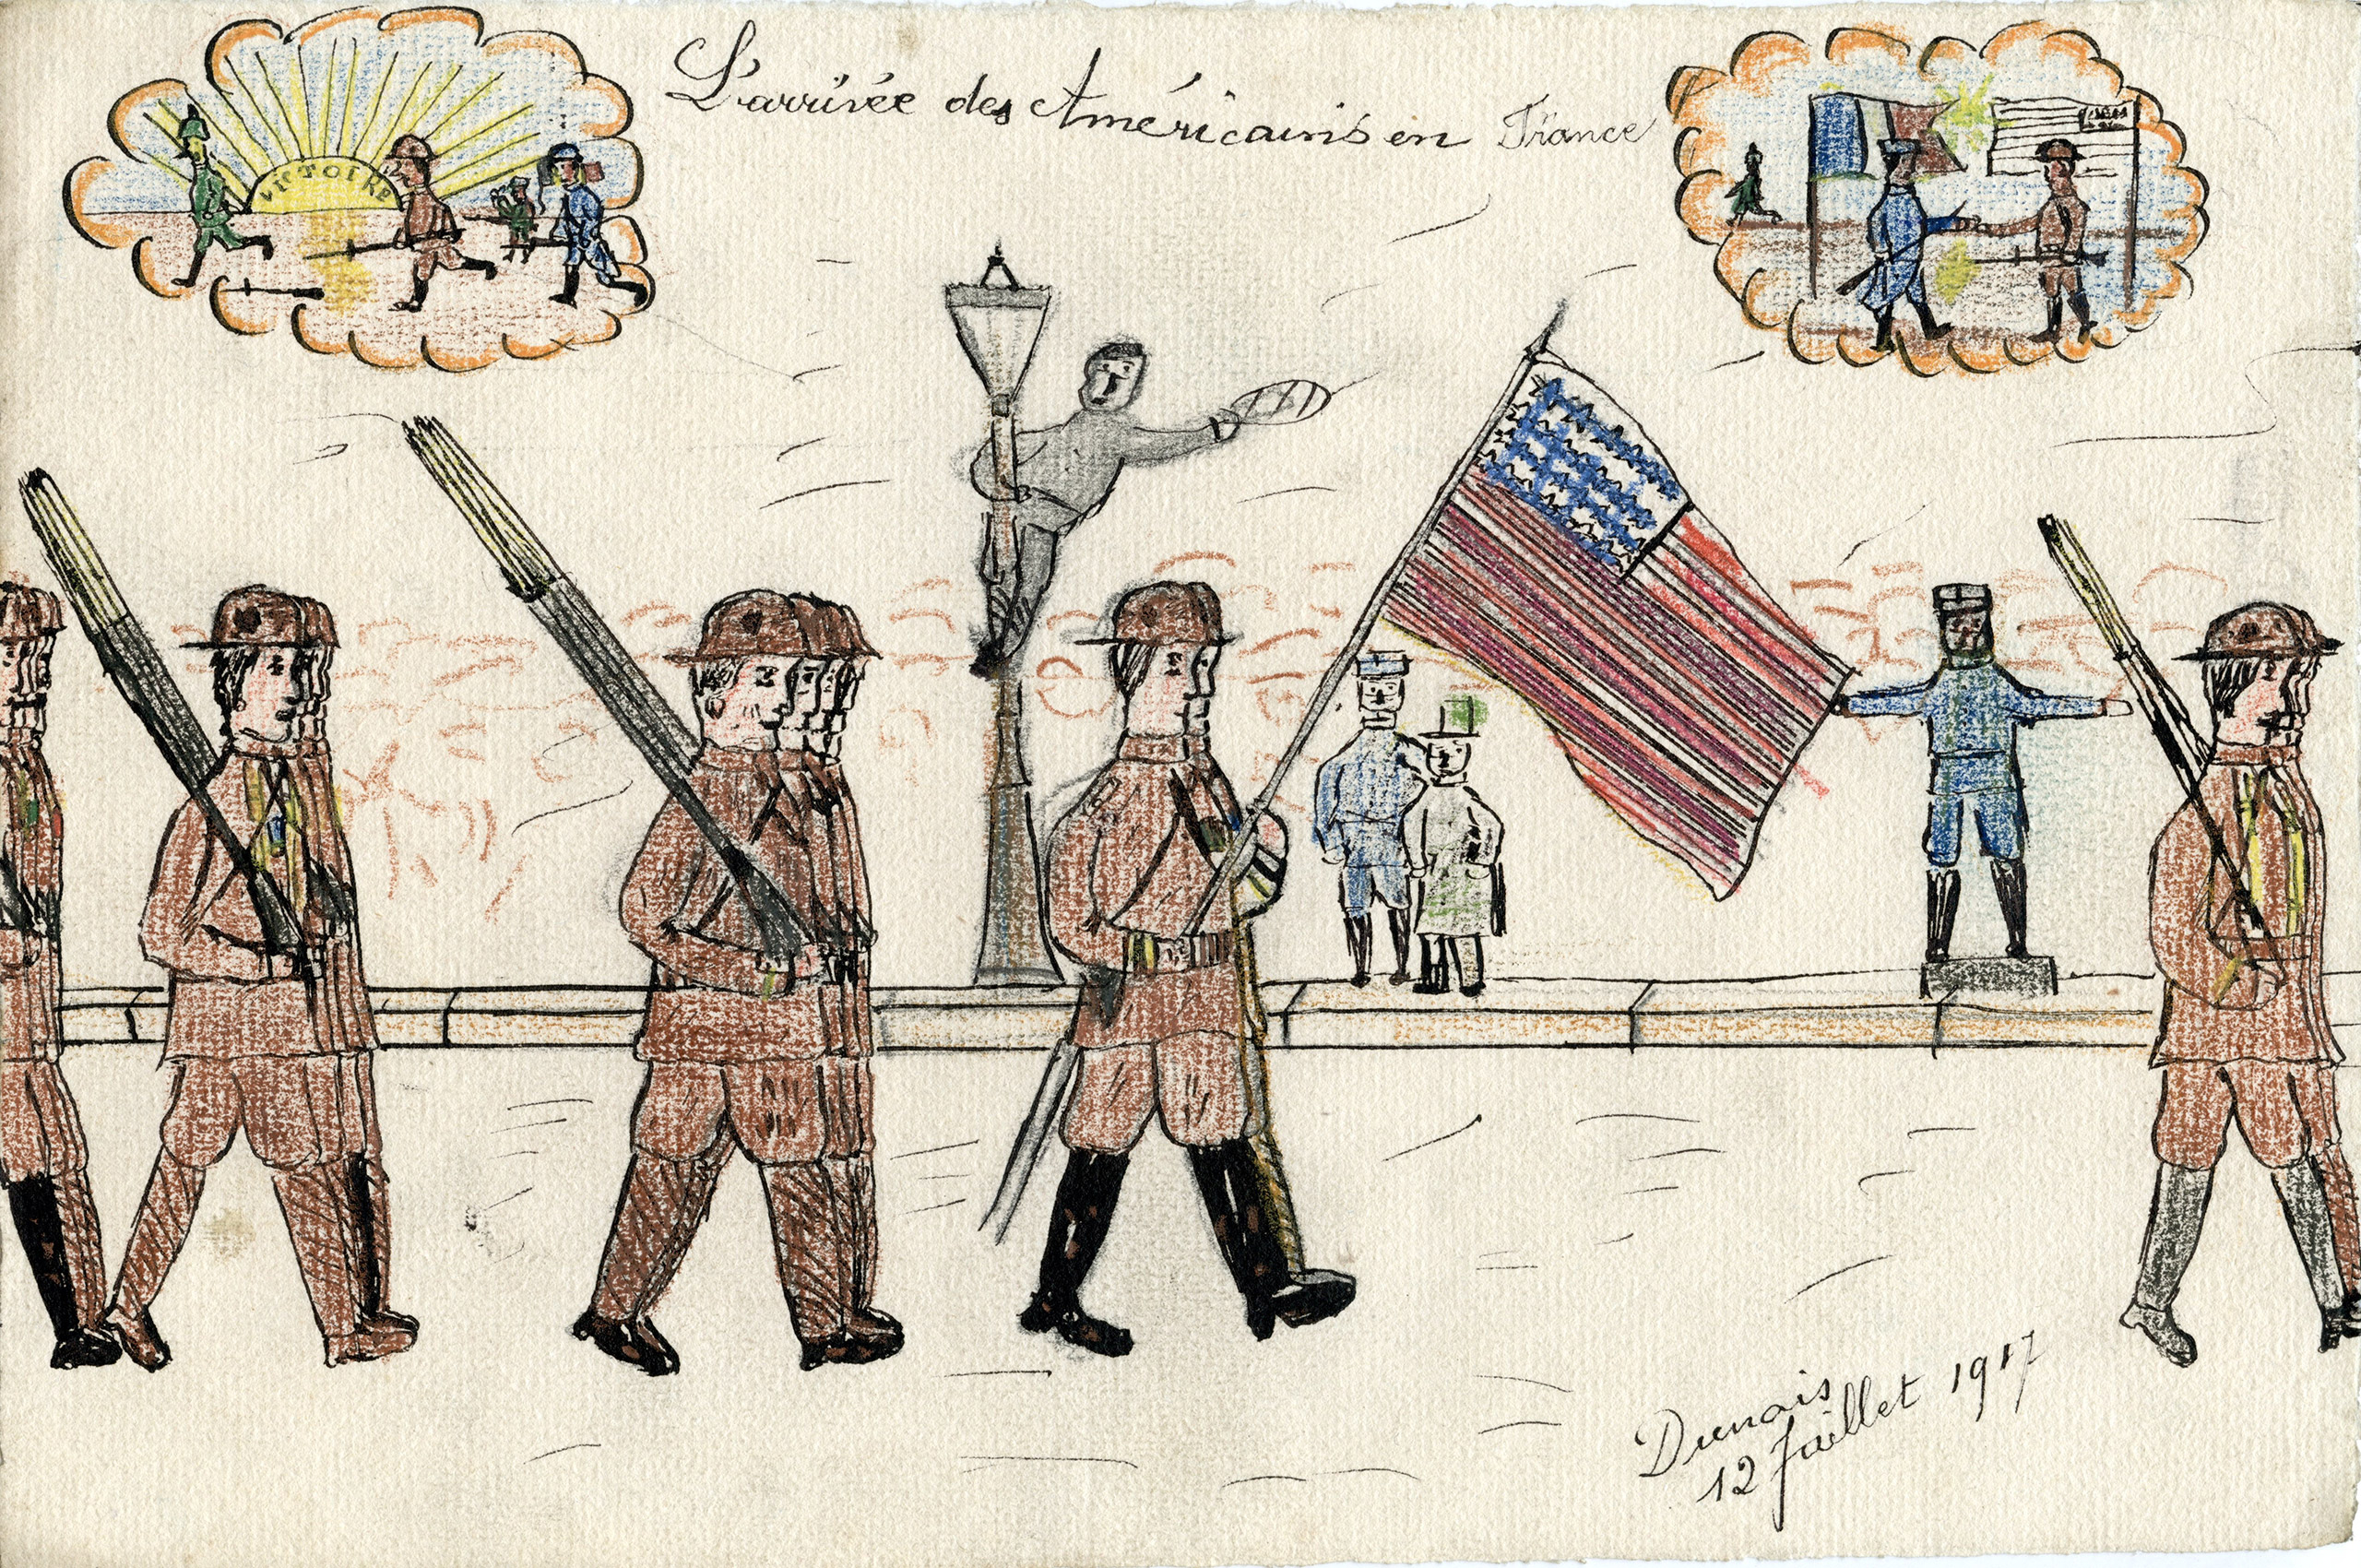 In this drawing, American troops march and proudly wave the American flag, as Parisian onlookers watch with excitement. An exuberant bystander dramatically swings from a lamppost, seeming to encourage the soldiers onwards. At the top of the image, two cloud-like vignettes depict what appears to be in one scene a triumph over the Germans, while the other appears to support the Franco-American alliance.